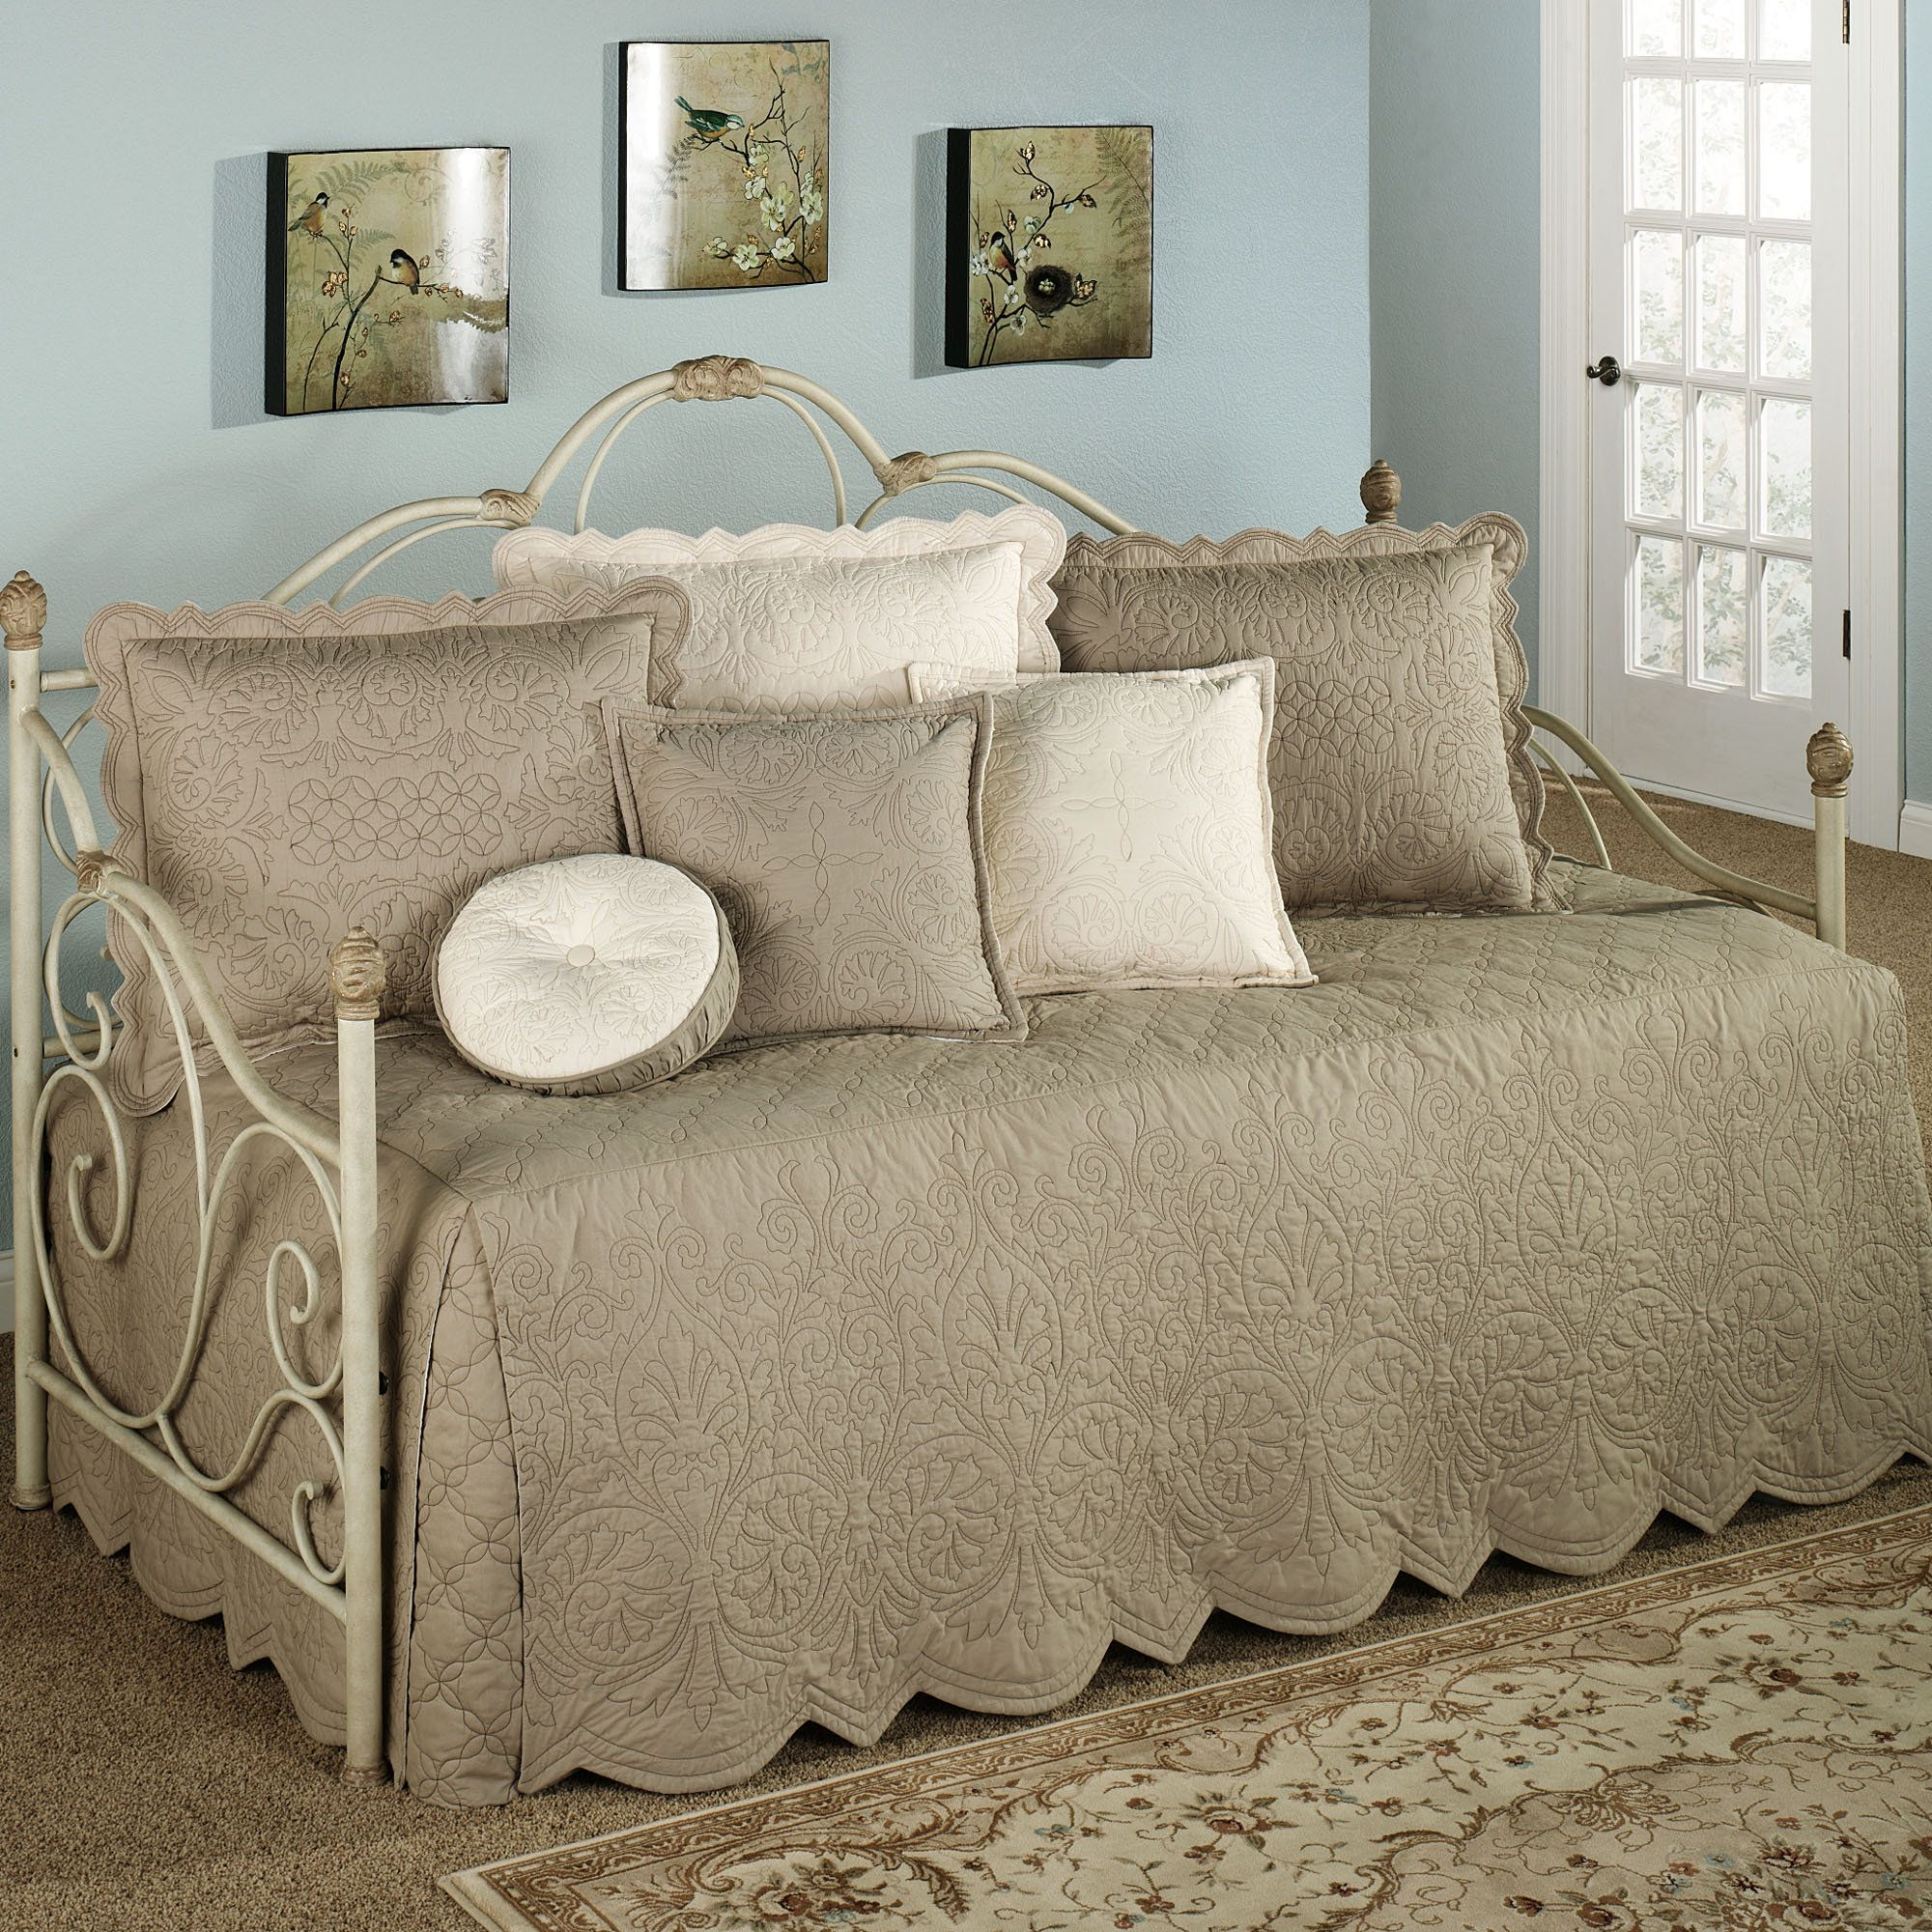 Best Beautiful Bedroom Pillow Sets With Elegant Pillows And 400 x 300